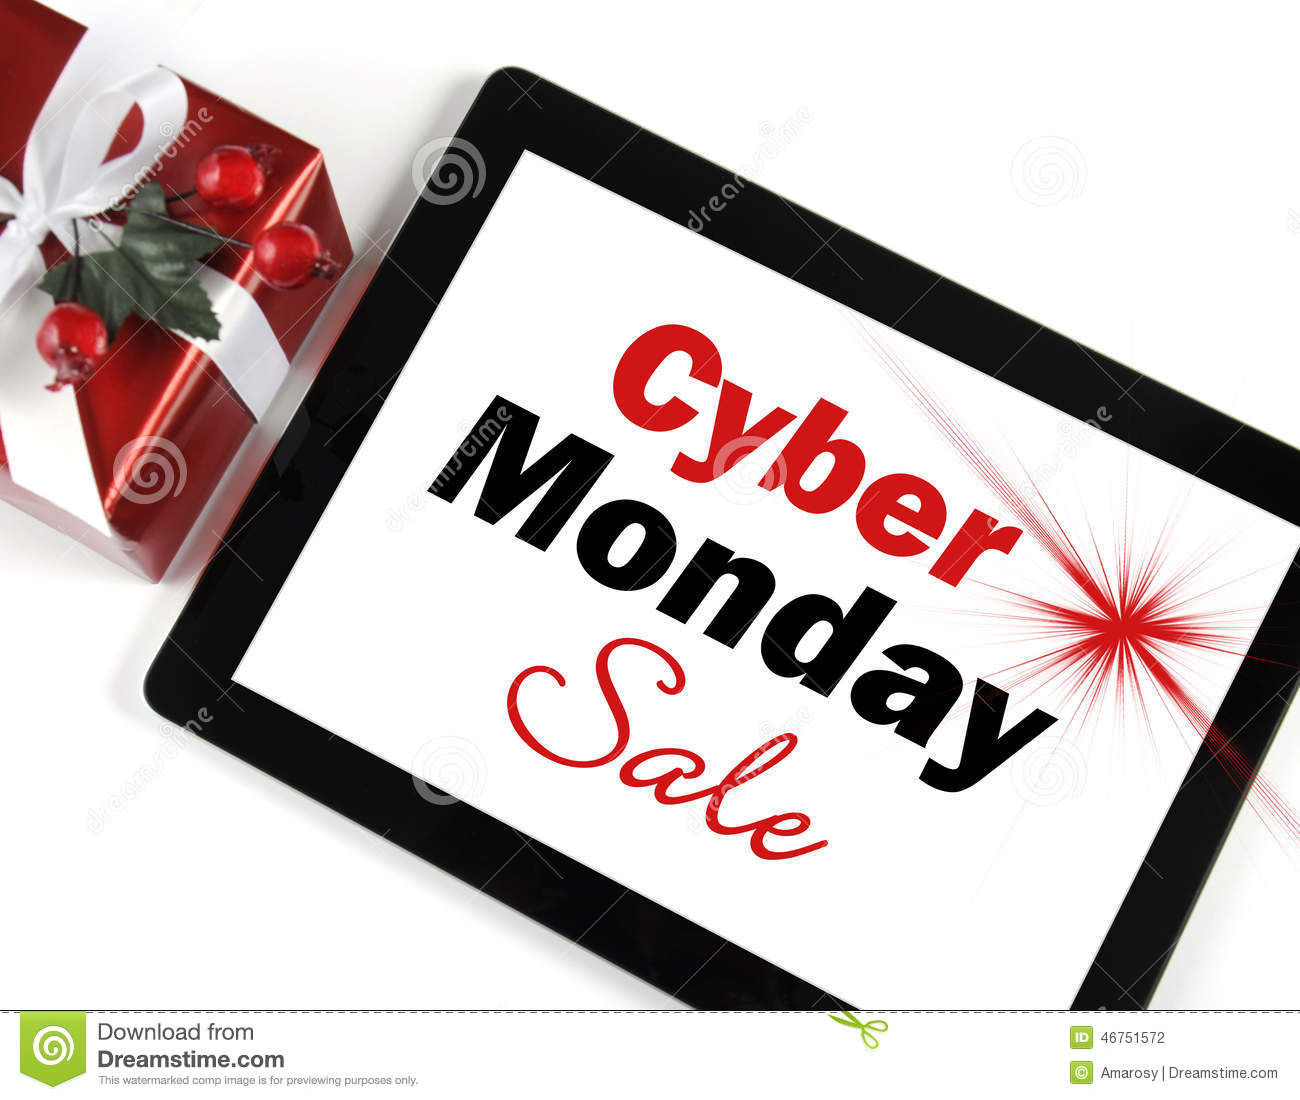 631a25f333 Cyber Monday Sale shopping message on black computer tablet device with gift